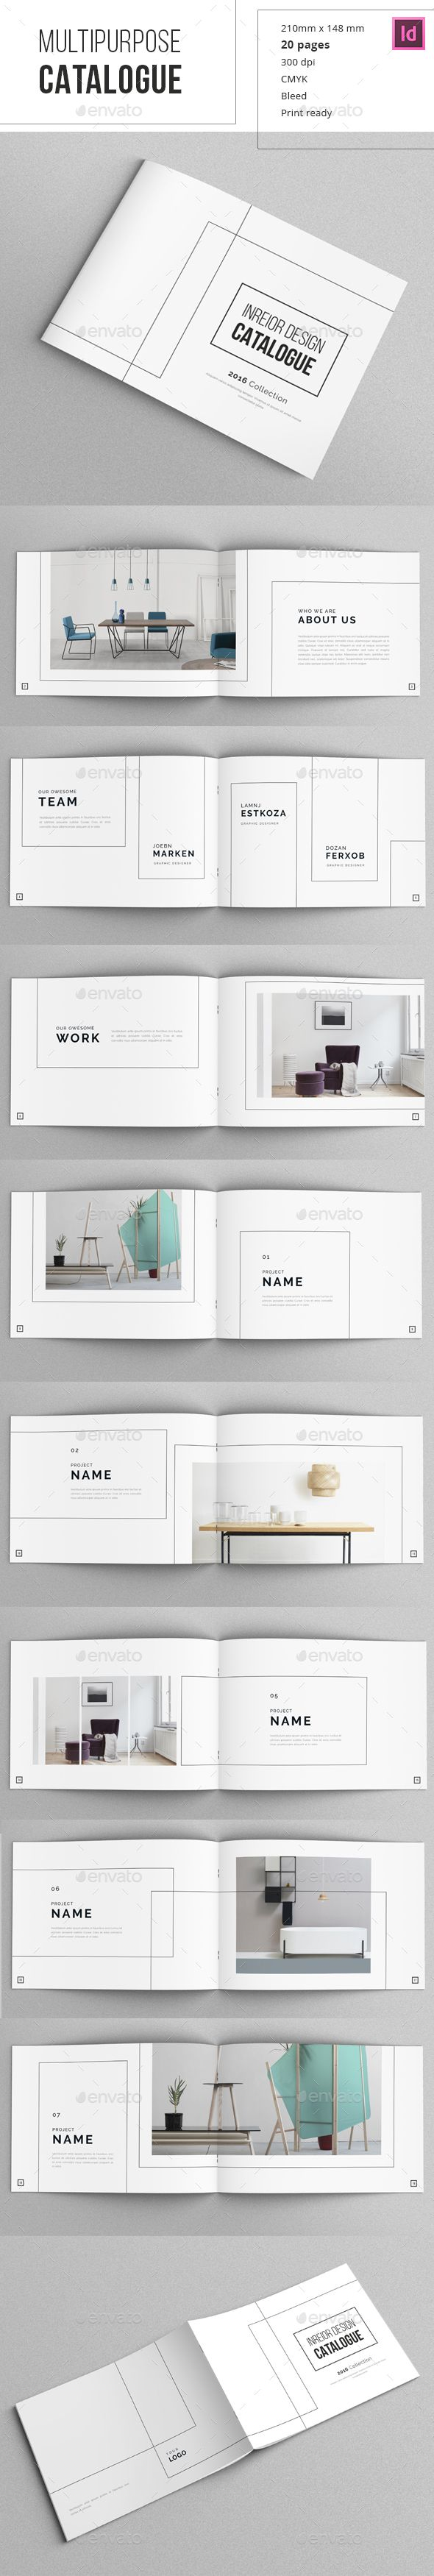 Minimal Indesign Catalogue | The shape, Typography and